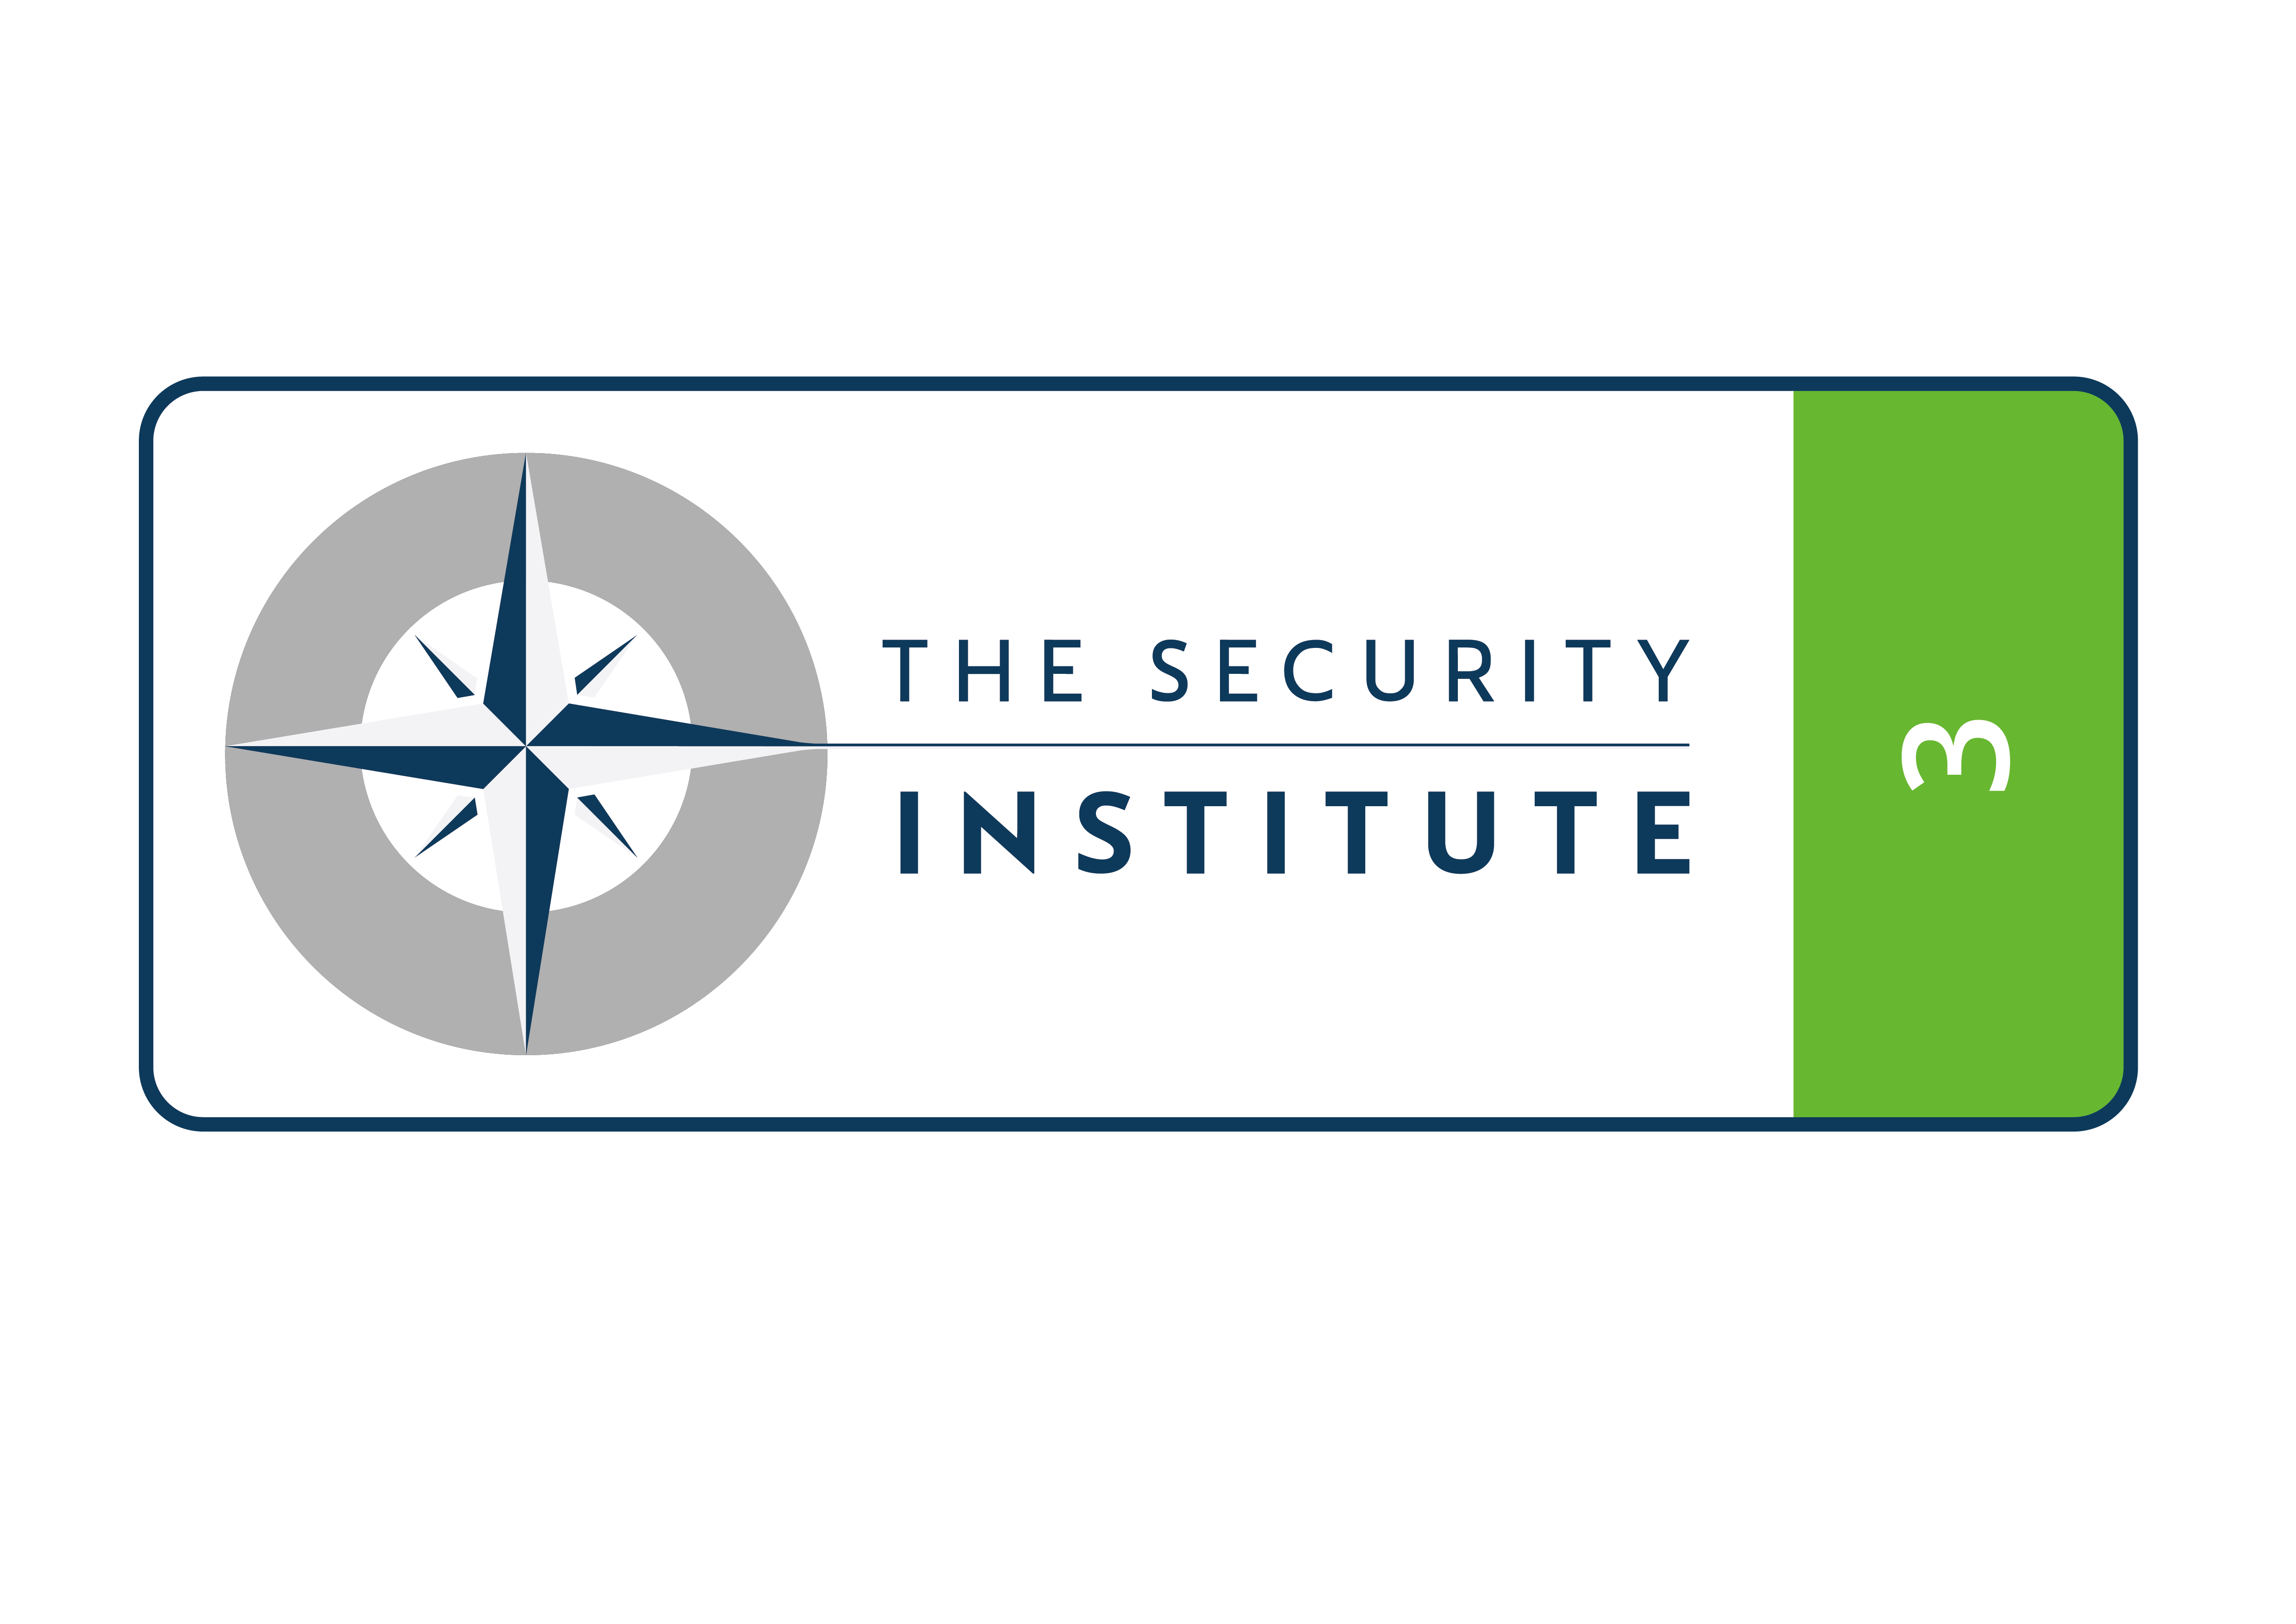 Home - The Security Institute